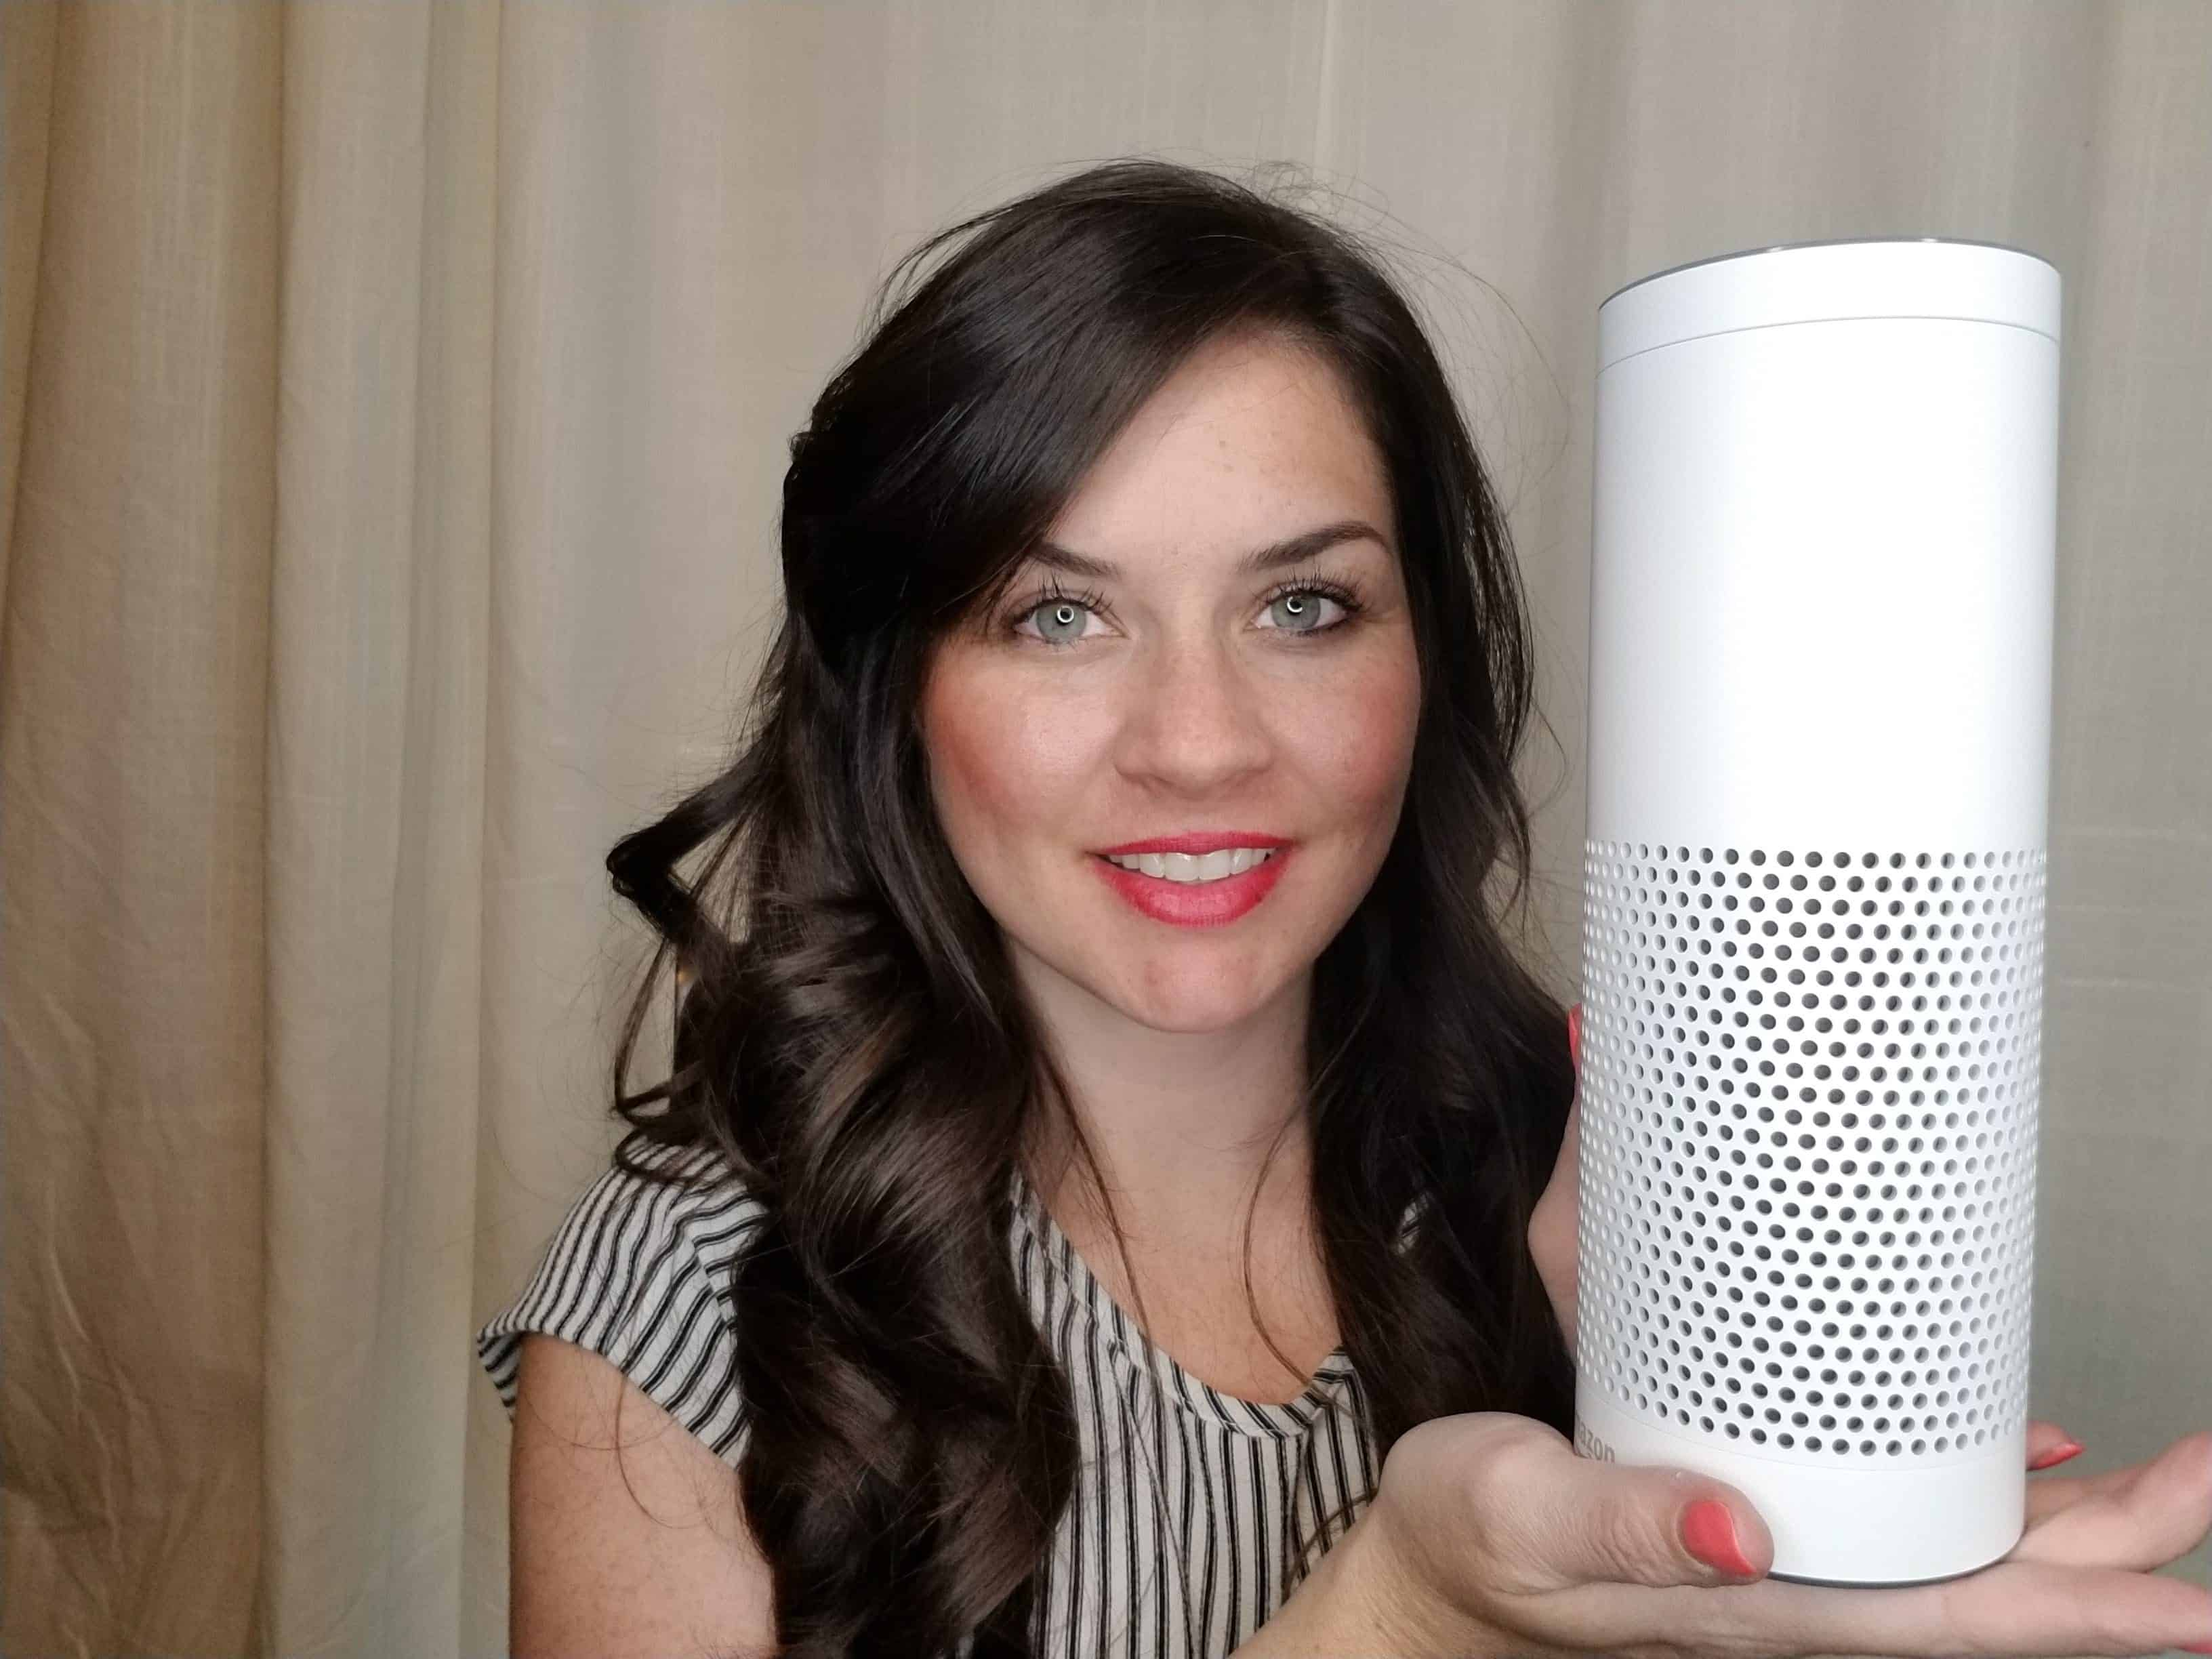 Amazon Echo Plus - The Perfect Mother's Day Gift